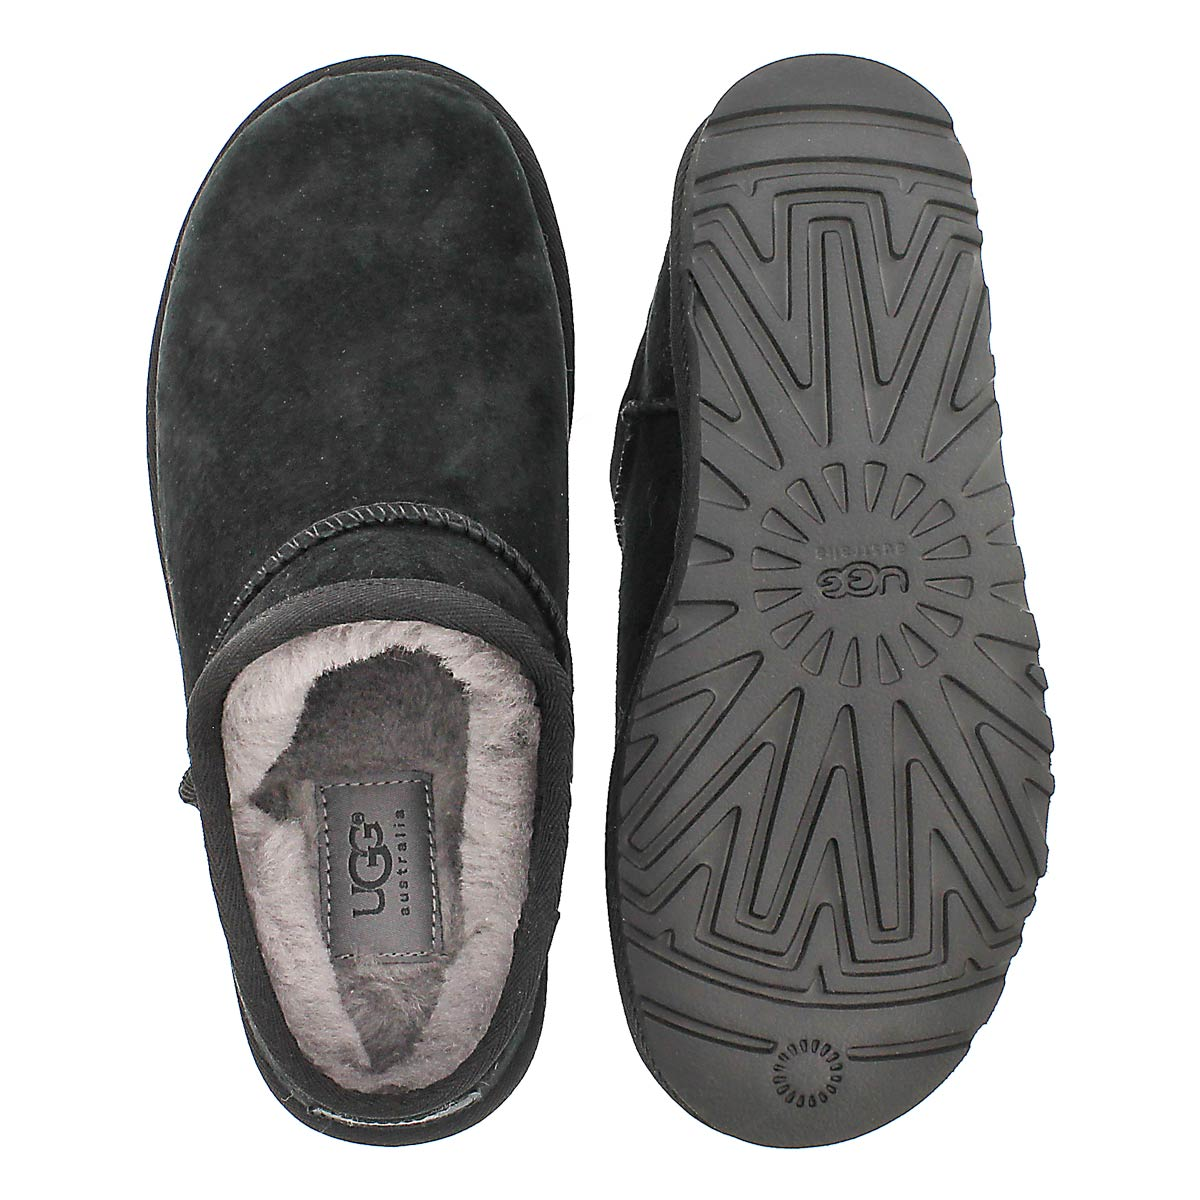 Lds Classic blk sheepskin slipper